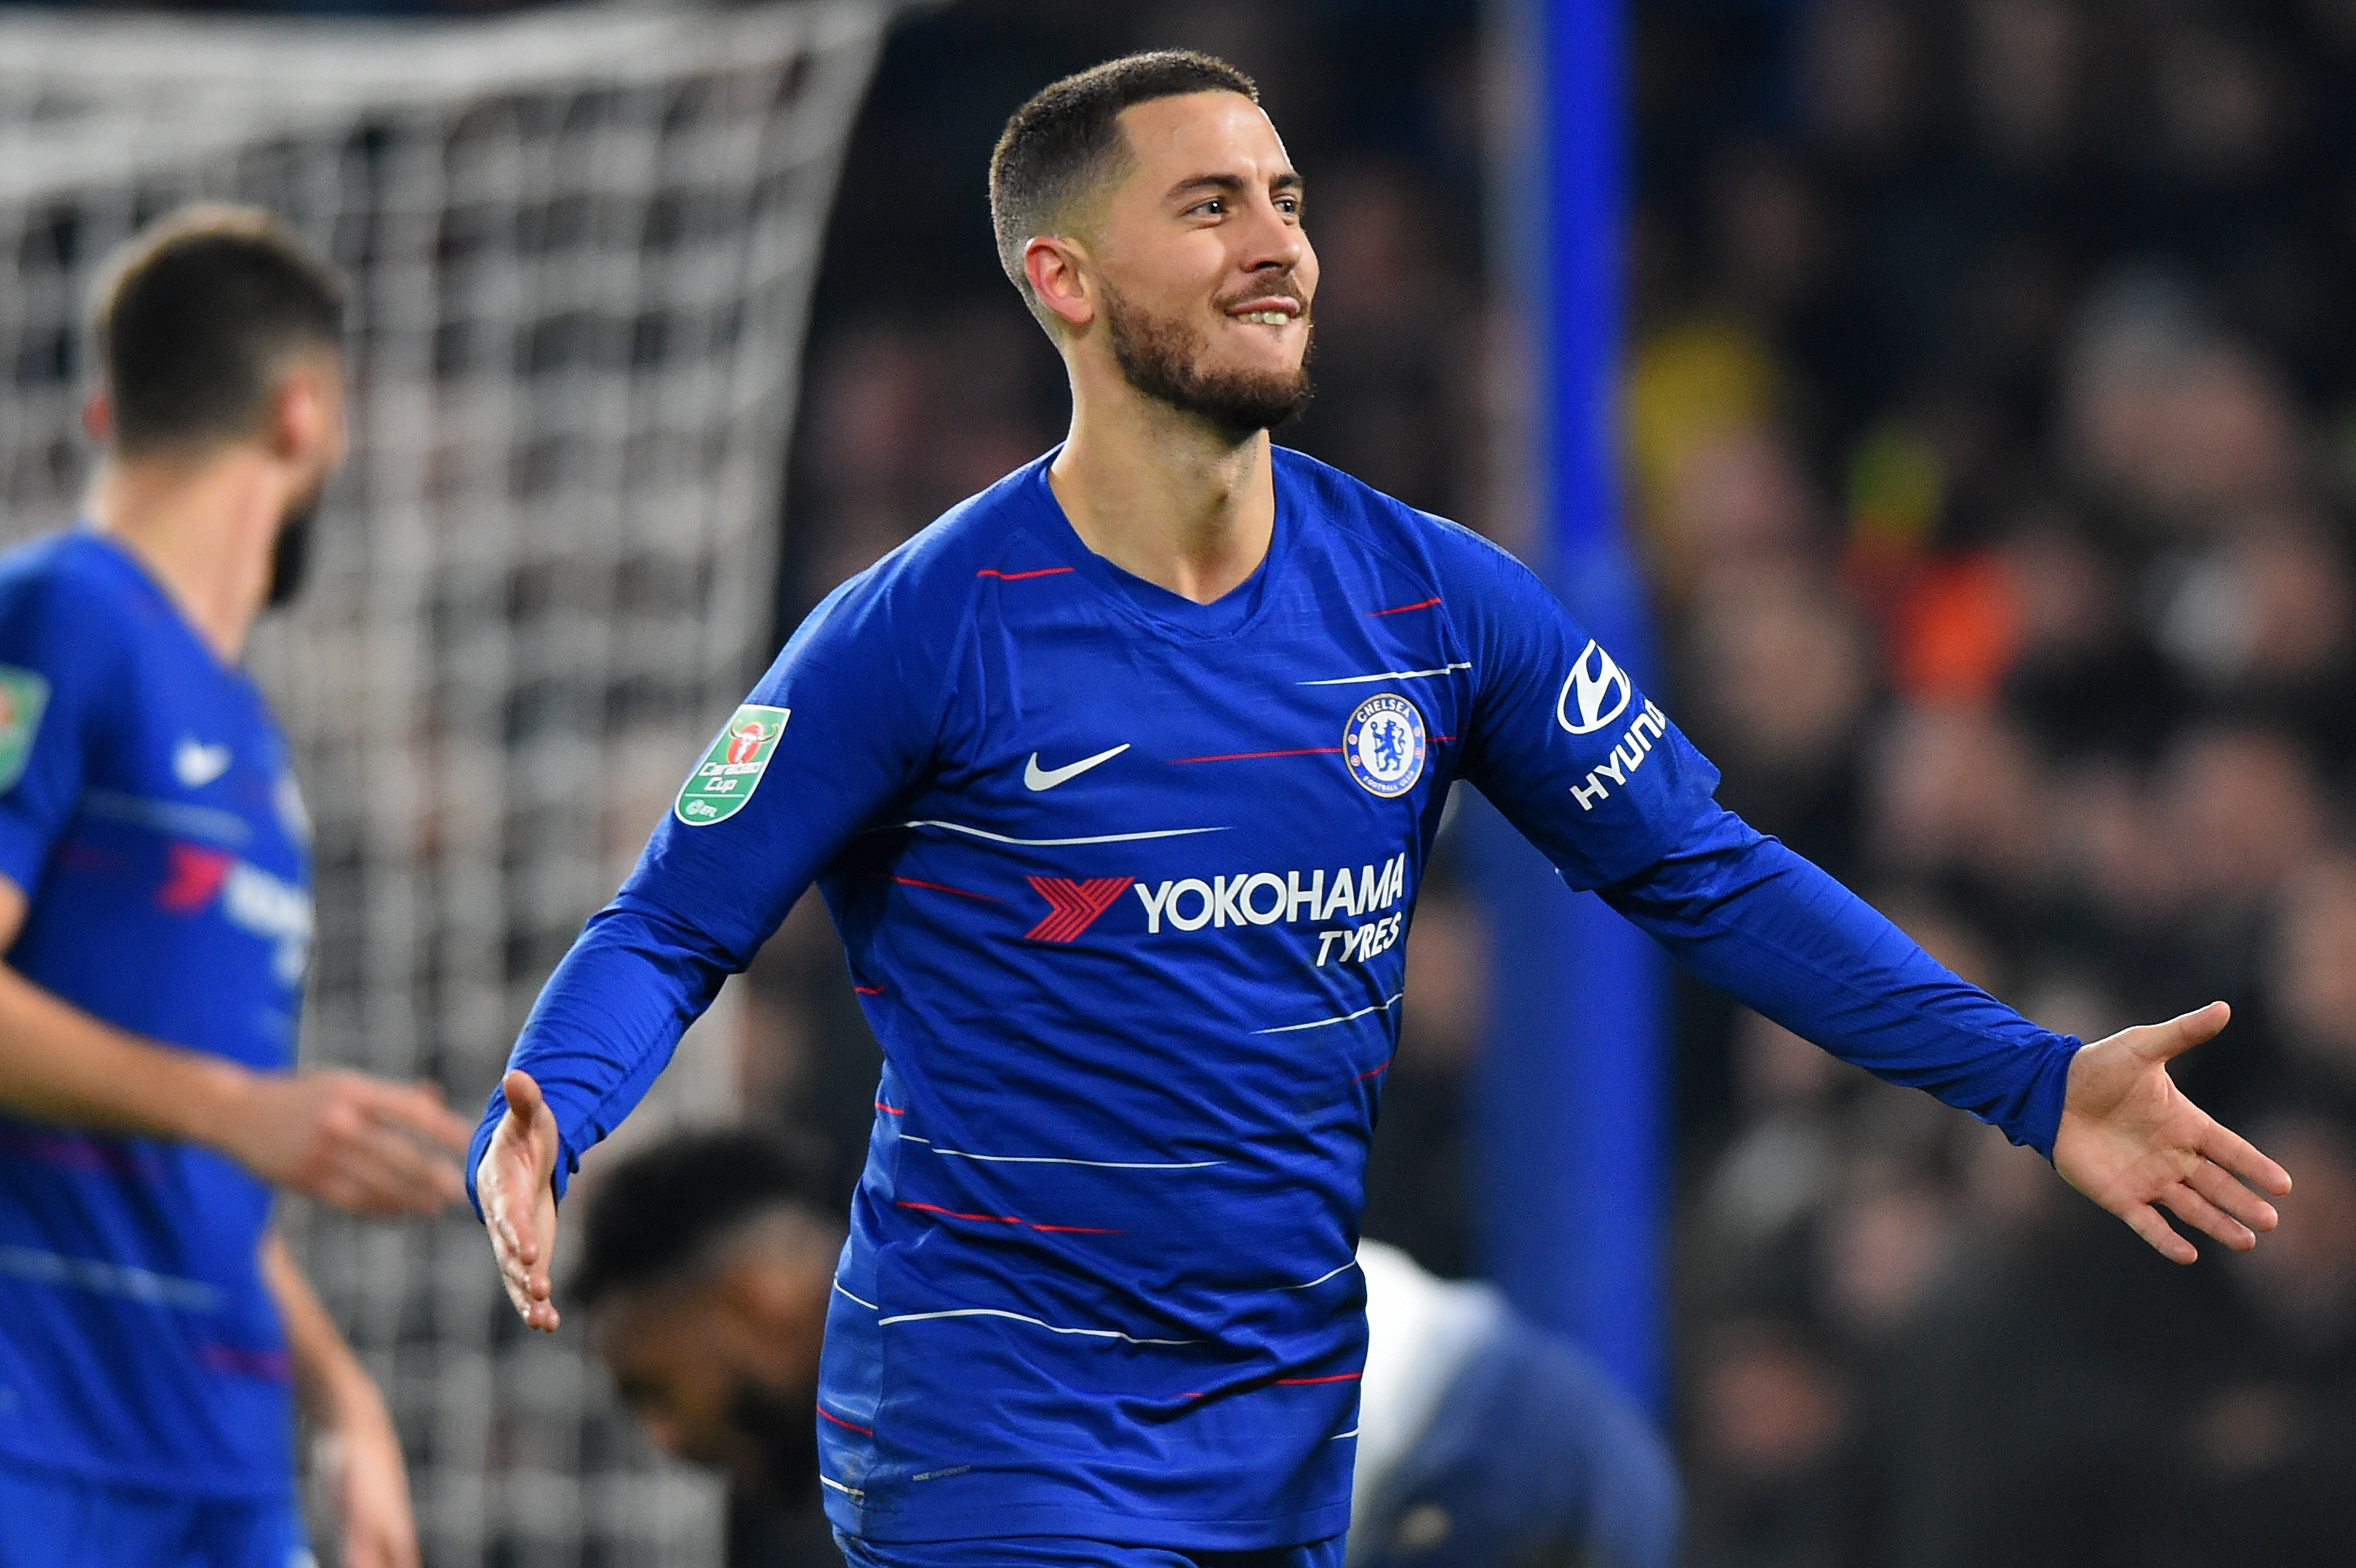 Sarri: If Hazard wants to leave, then he should